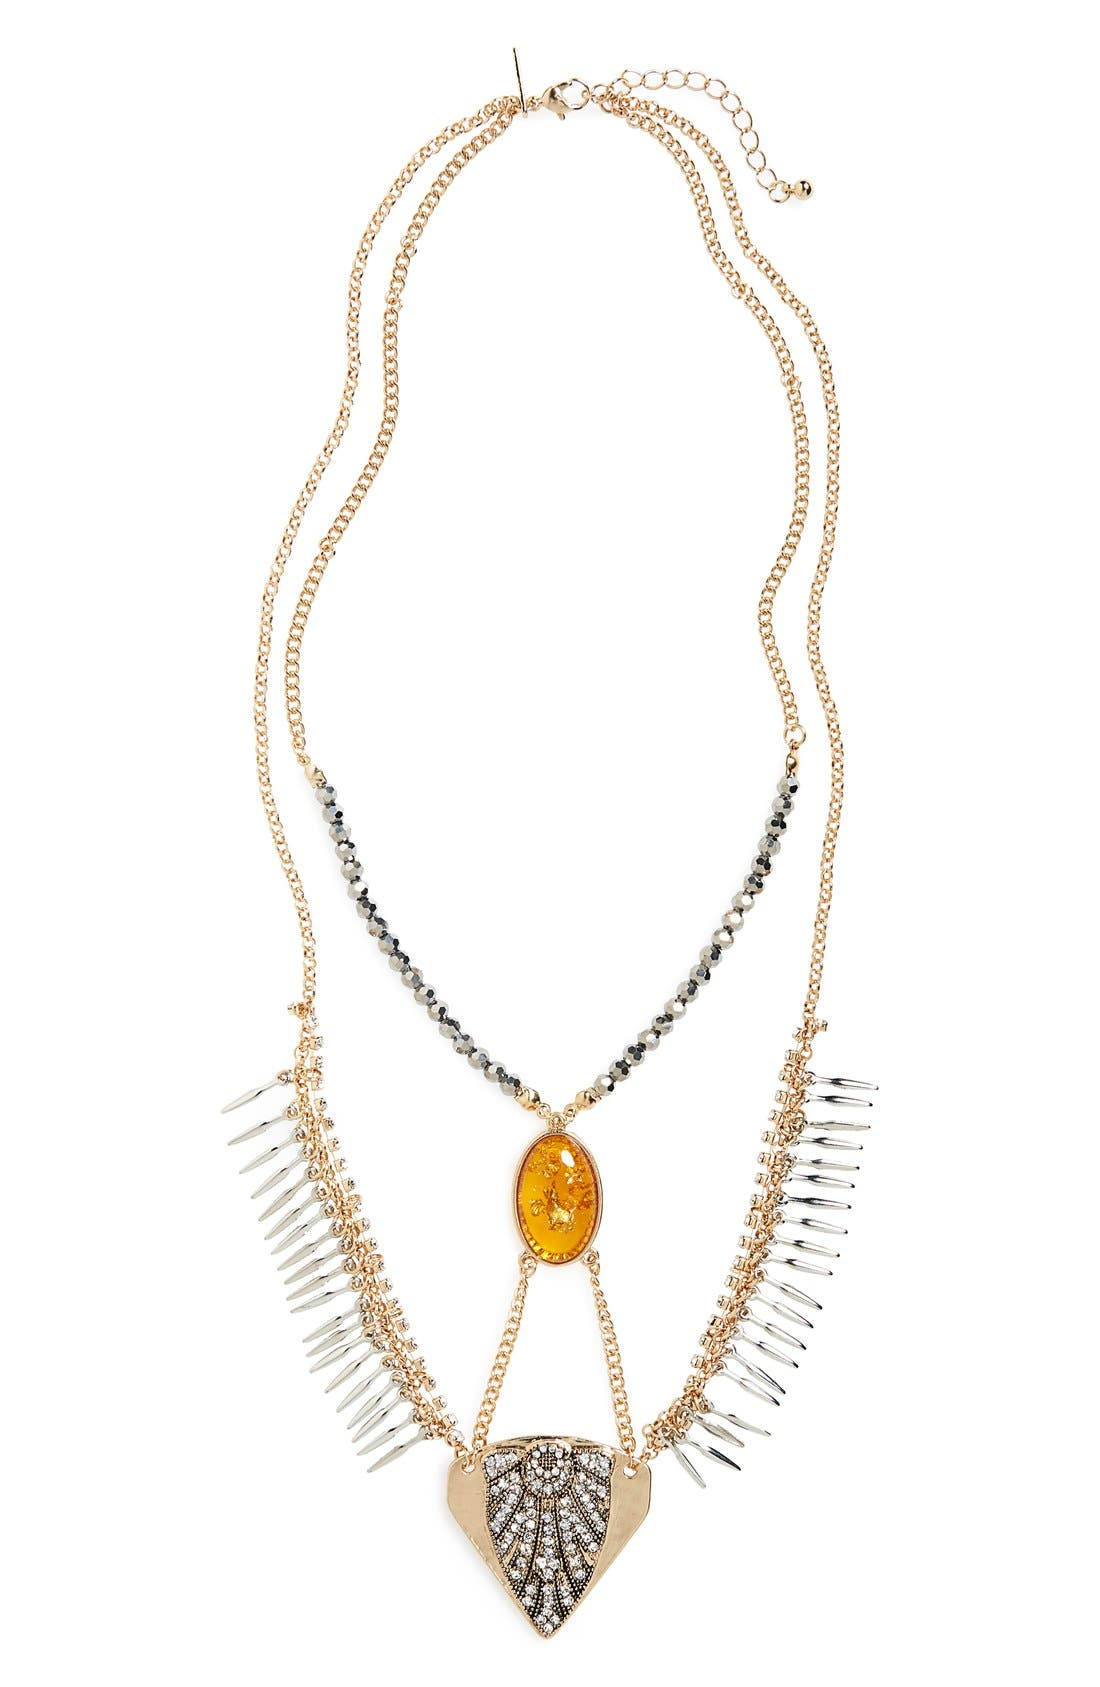 Main Image - Topshop Multi-Row Statement Necklace